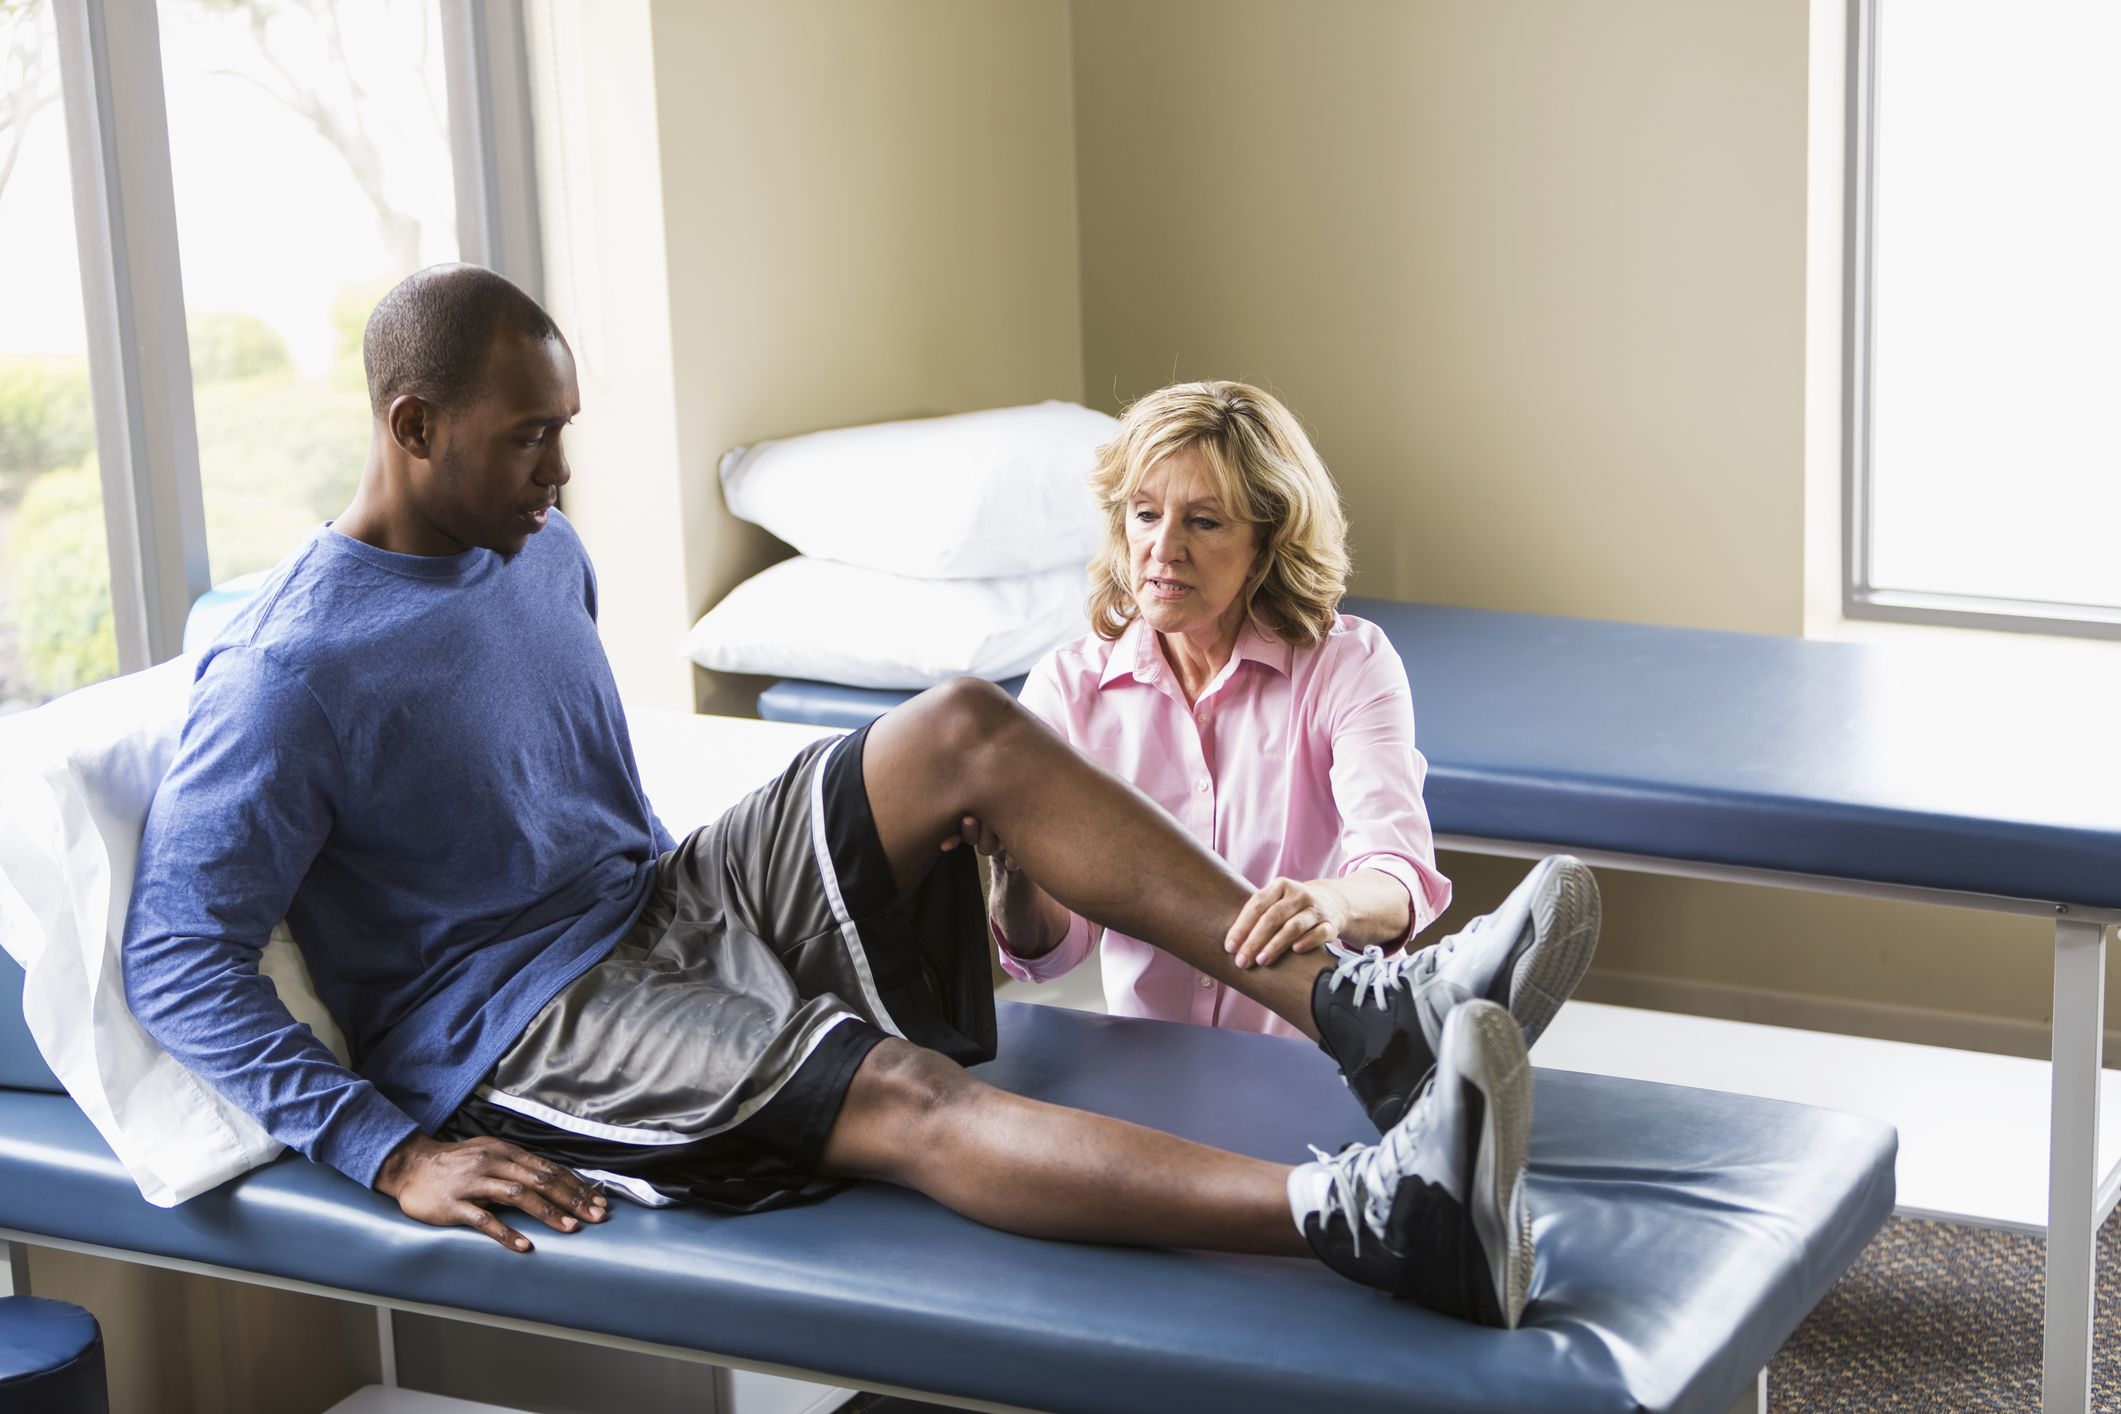 Sensitivity and Allergy to Metals in a Knee Replacement